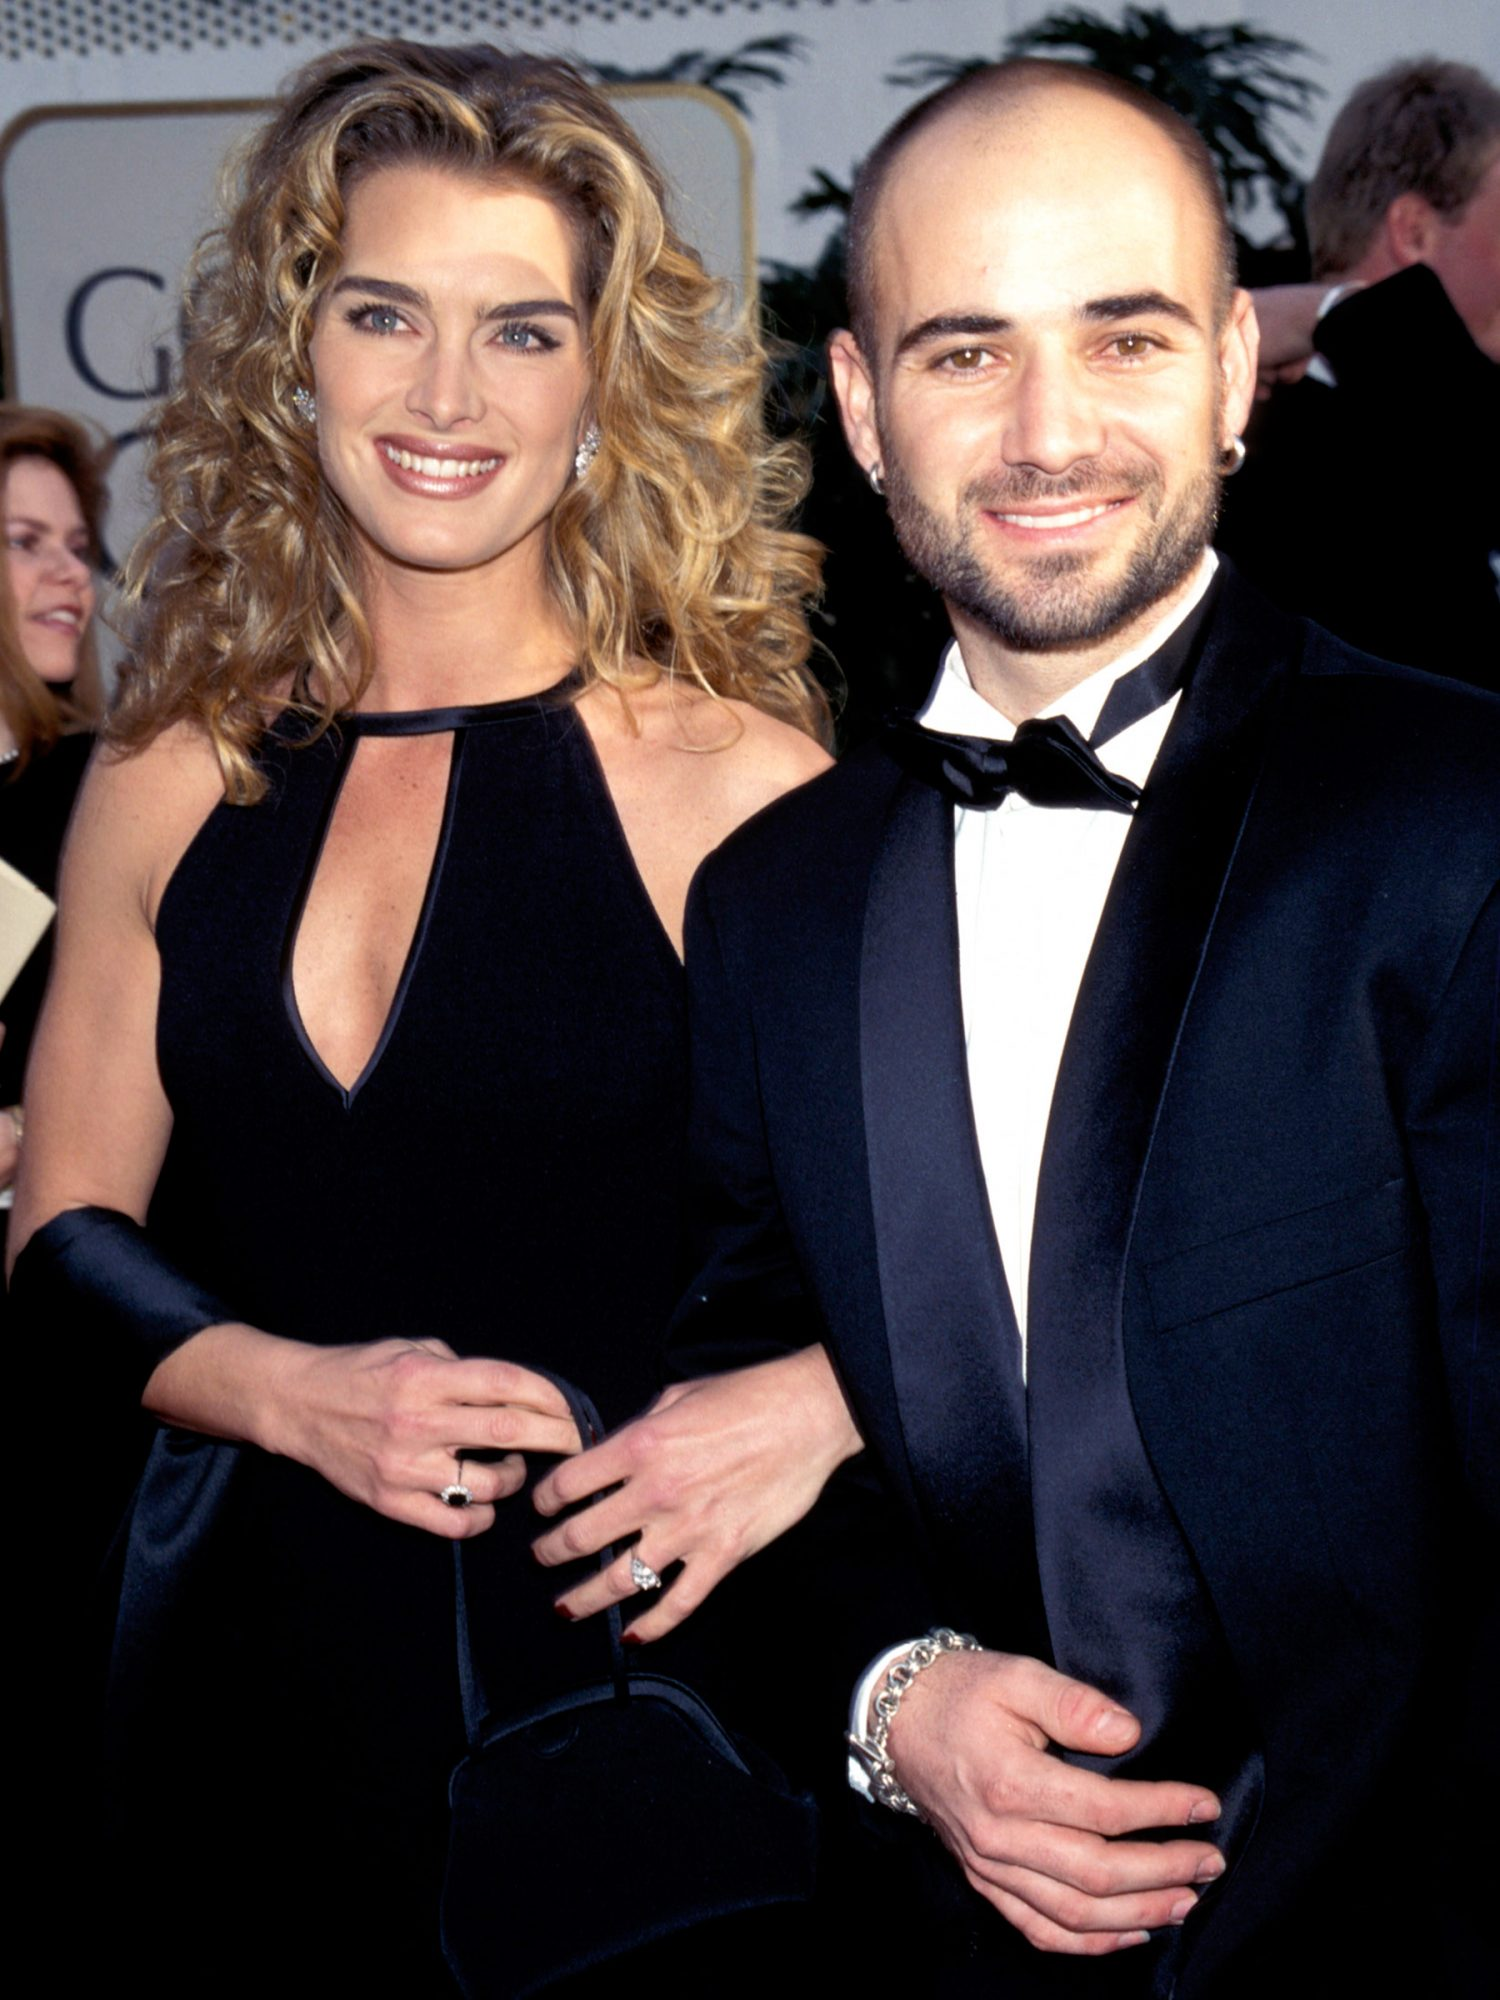 Andre Agassi and Best Actress in a Musical or Comedy Series Nominee Brooke Shields (Suddenly Susan)